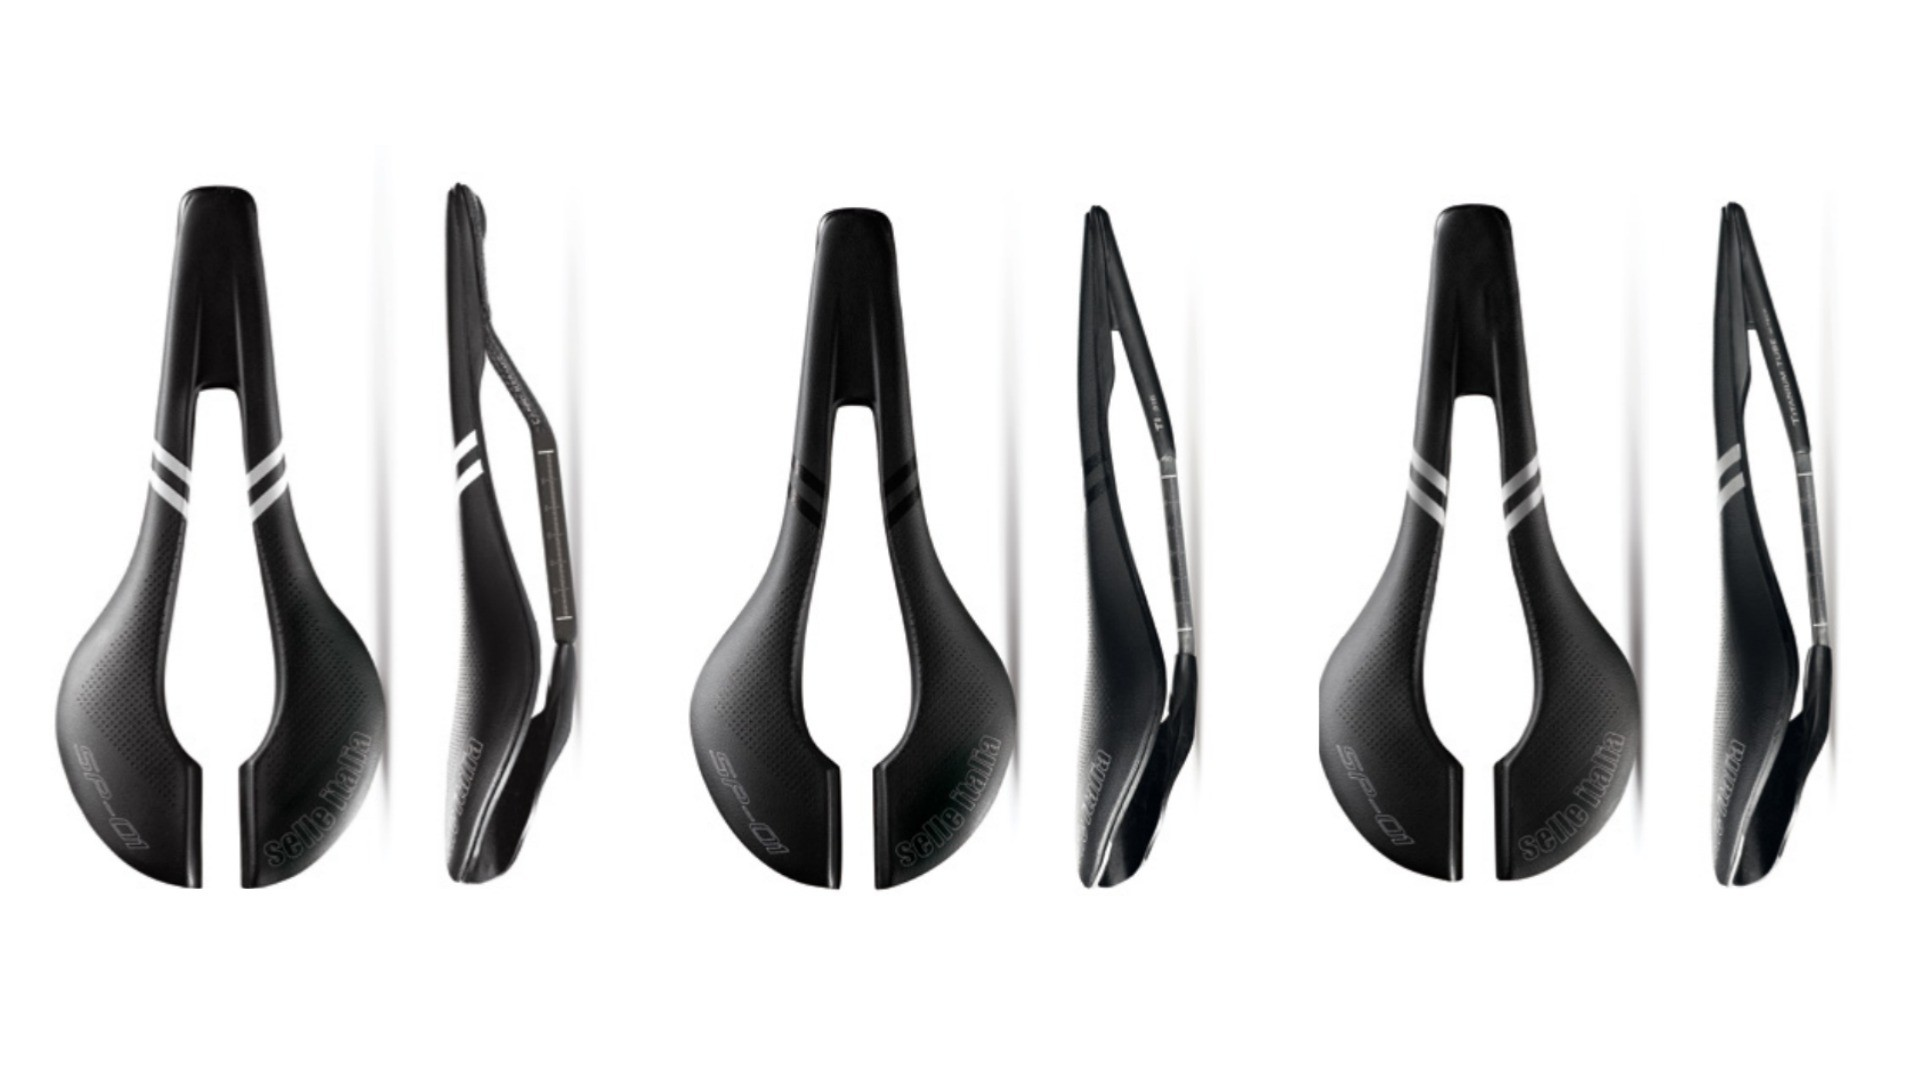 The three new SP-01 saddles from left to right: Kit Carbonio Superflow, Superflow and Titanium Superflow